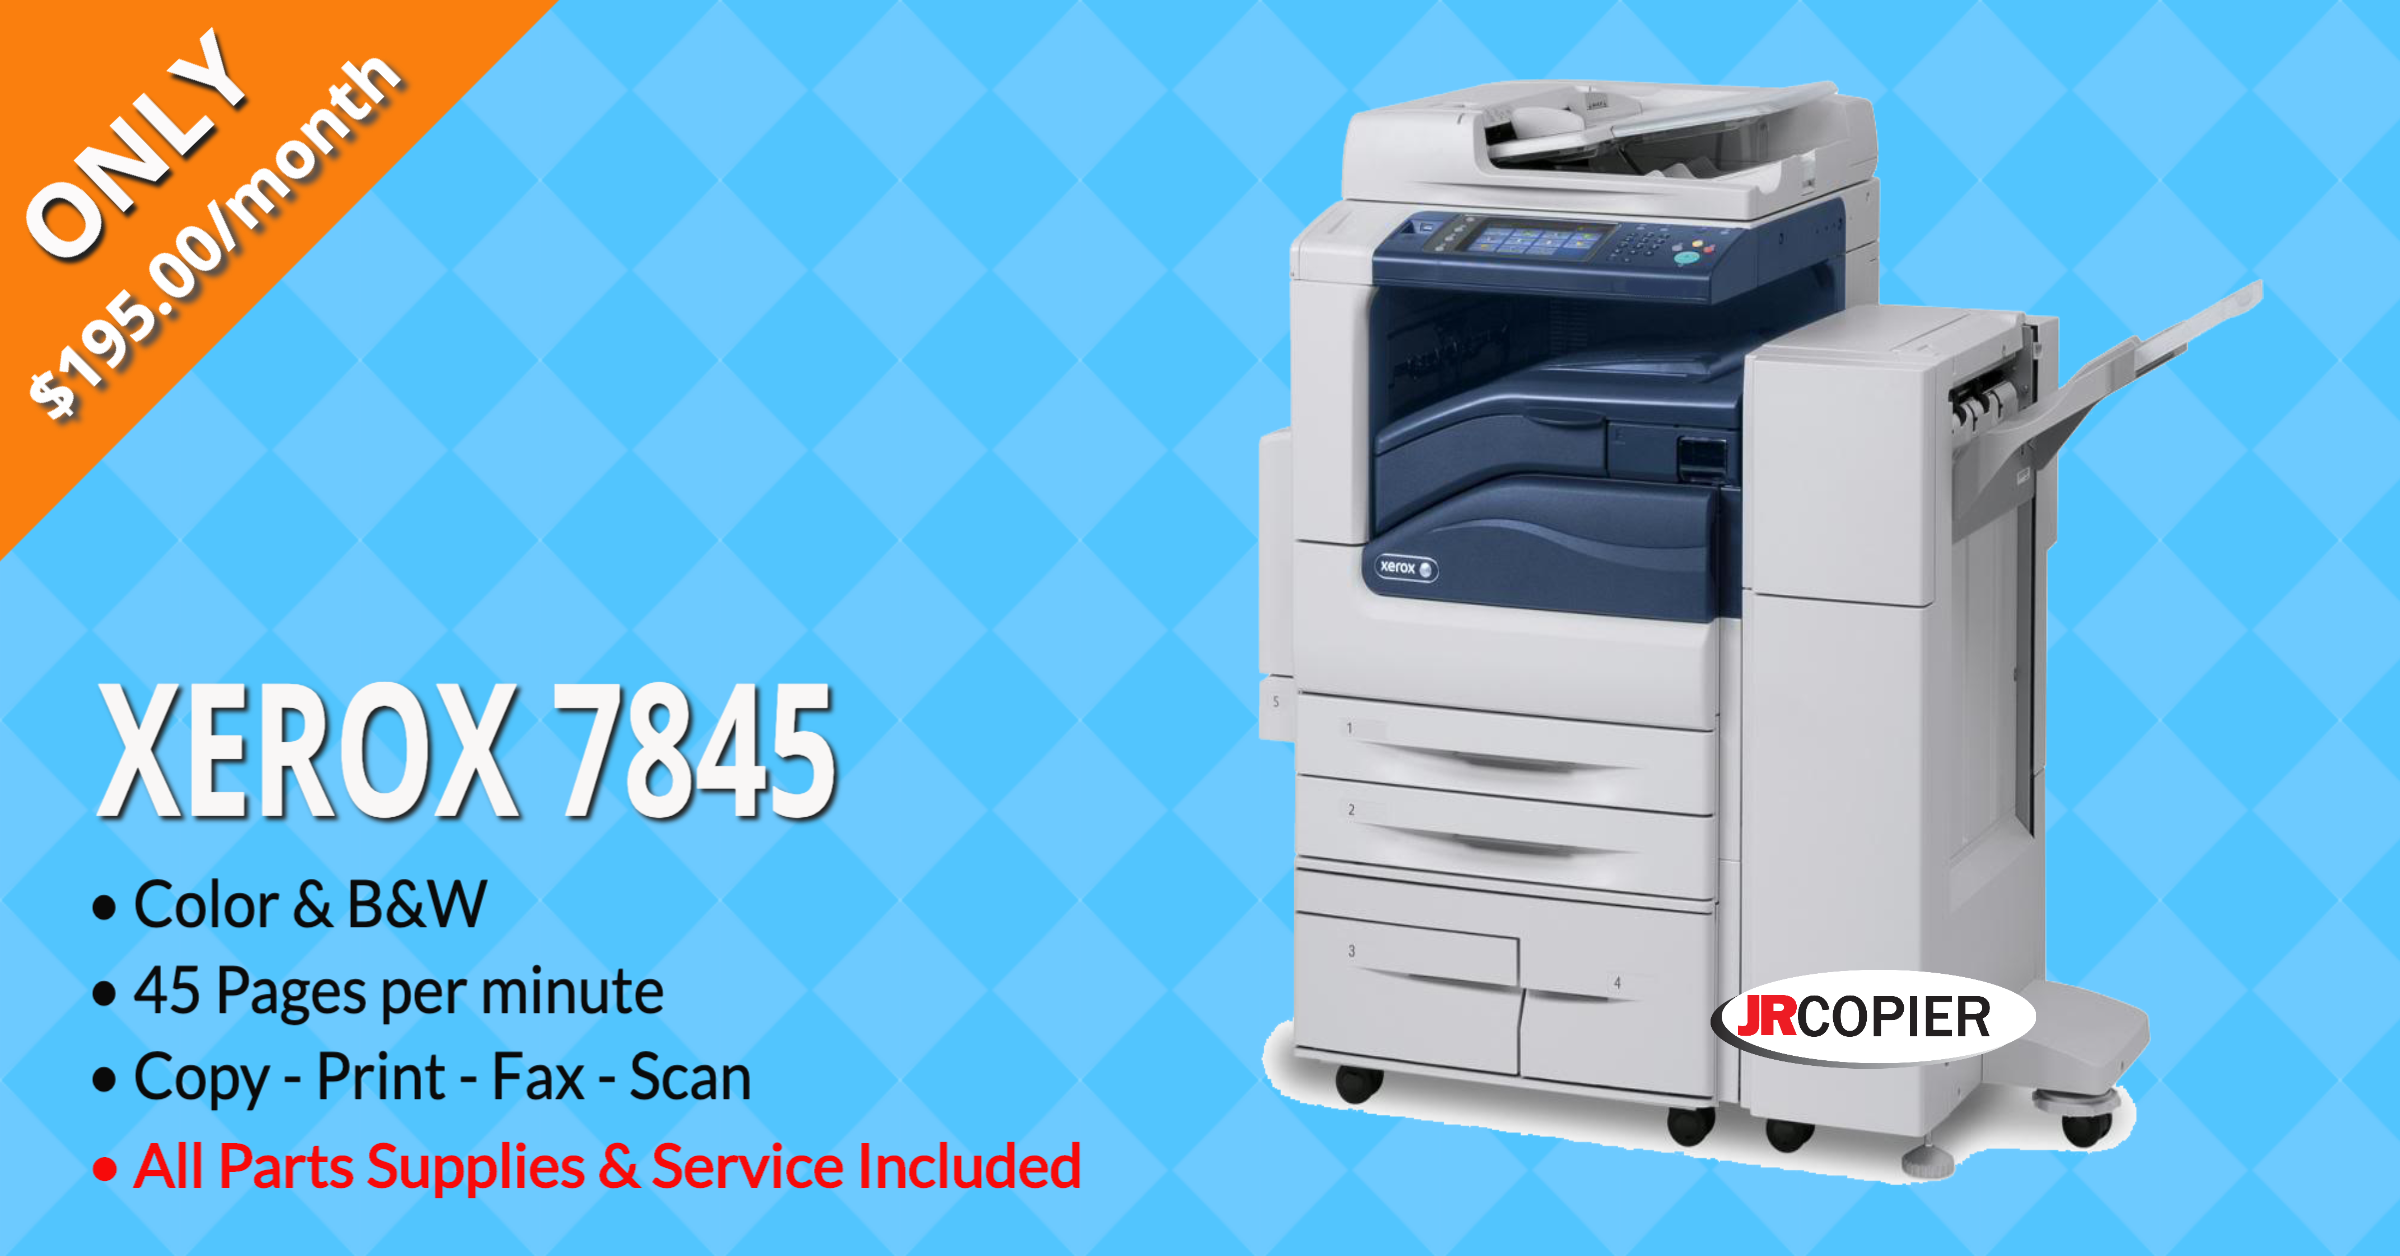 Copy Machine Price 30030, 30033, 30306, 30307, 30322, 30329, 30333